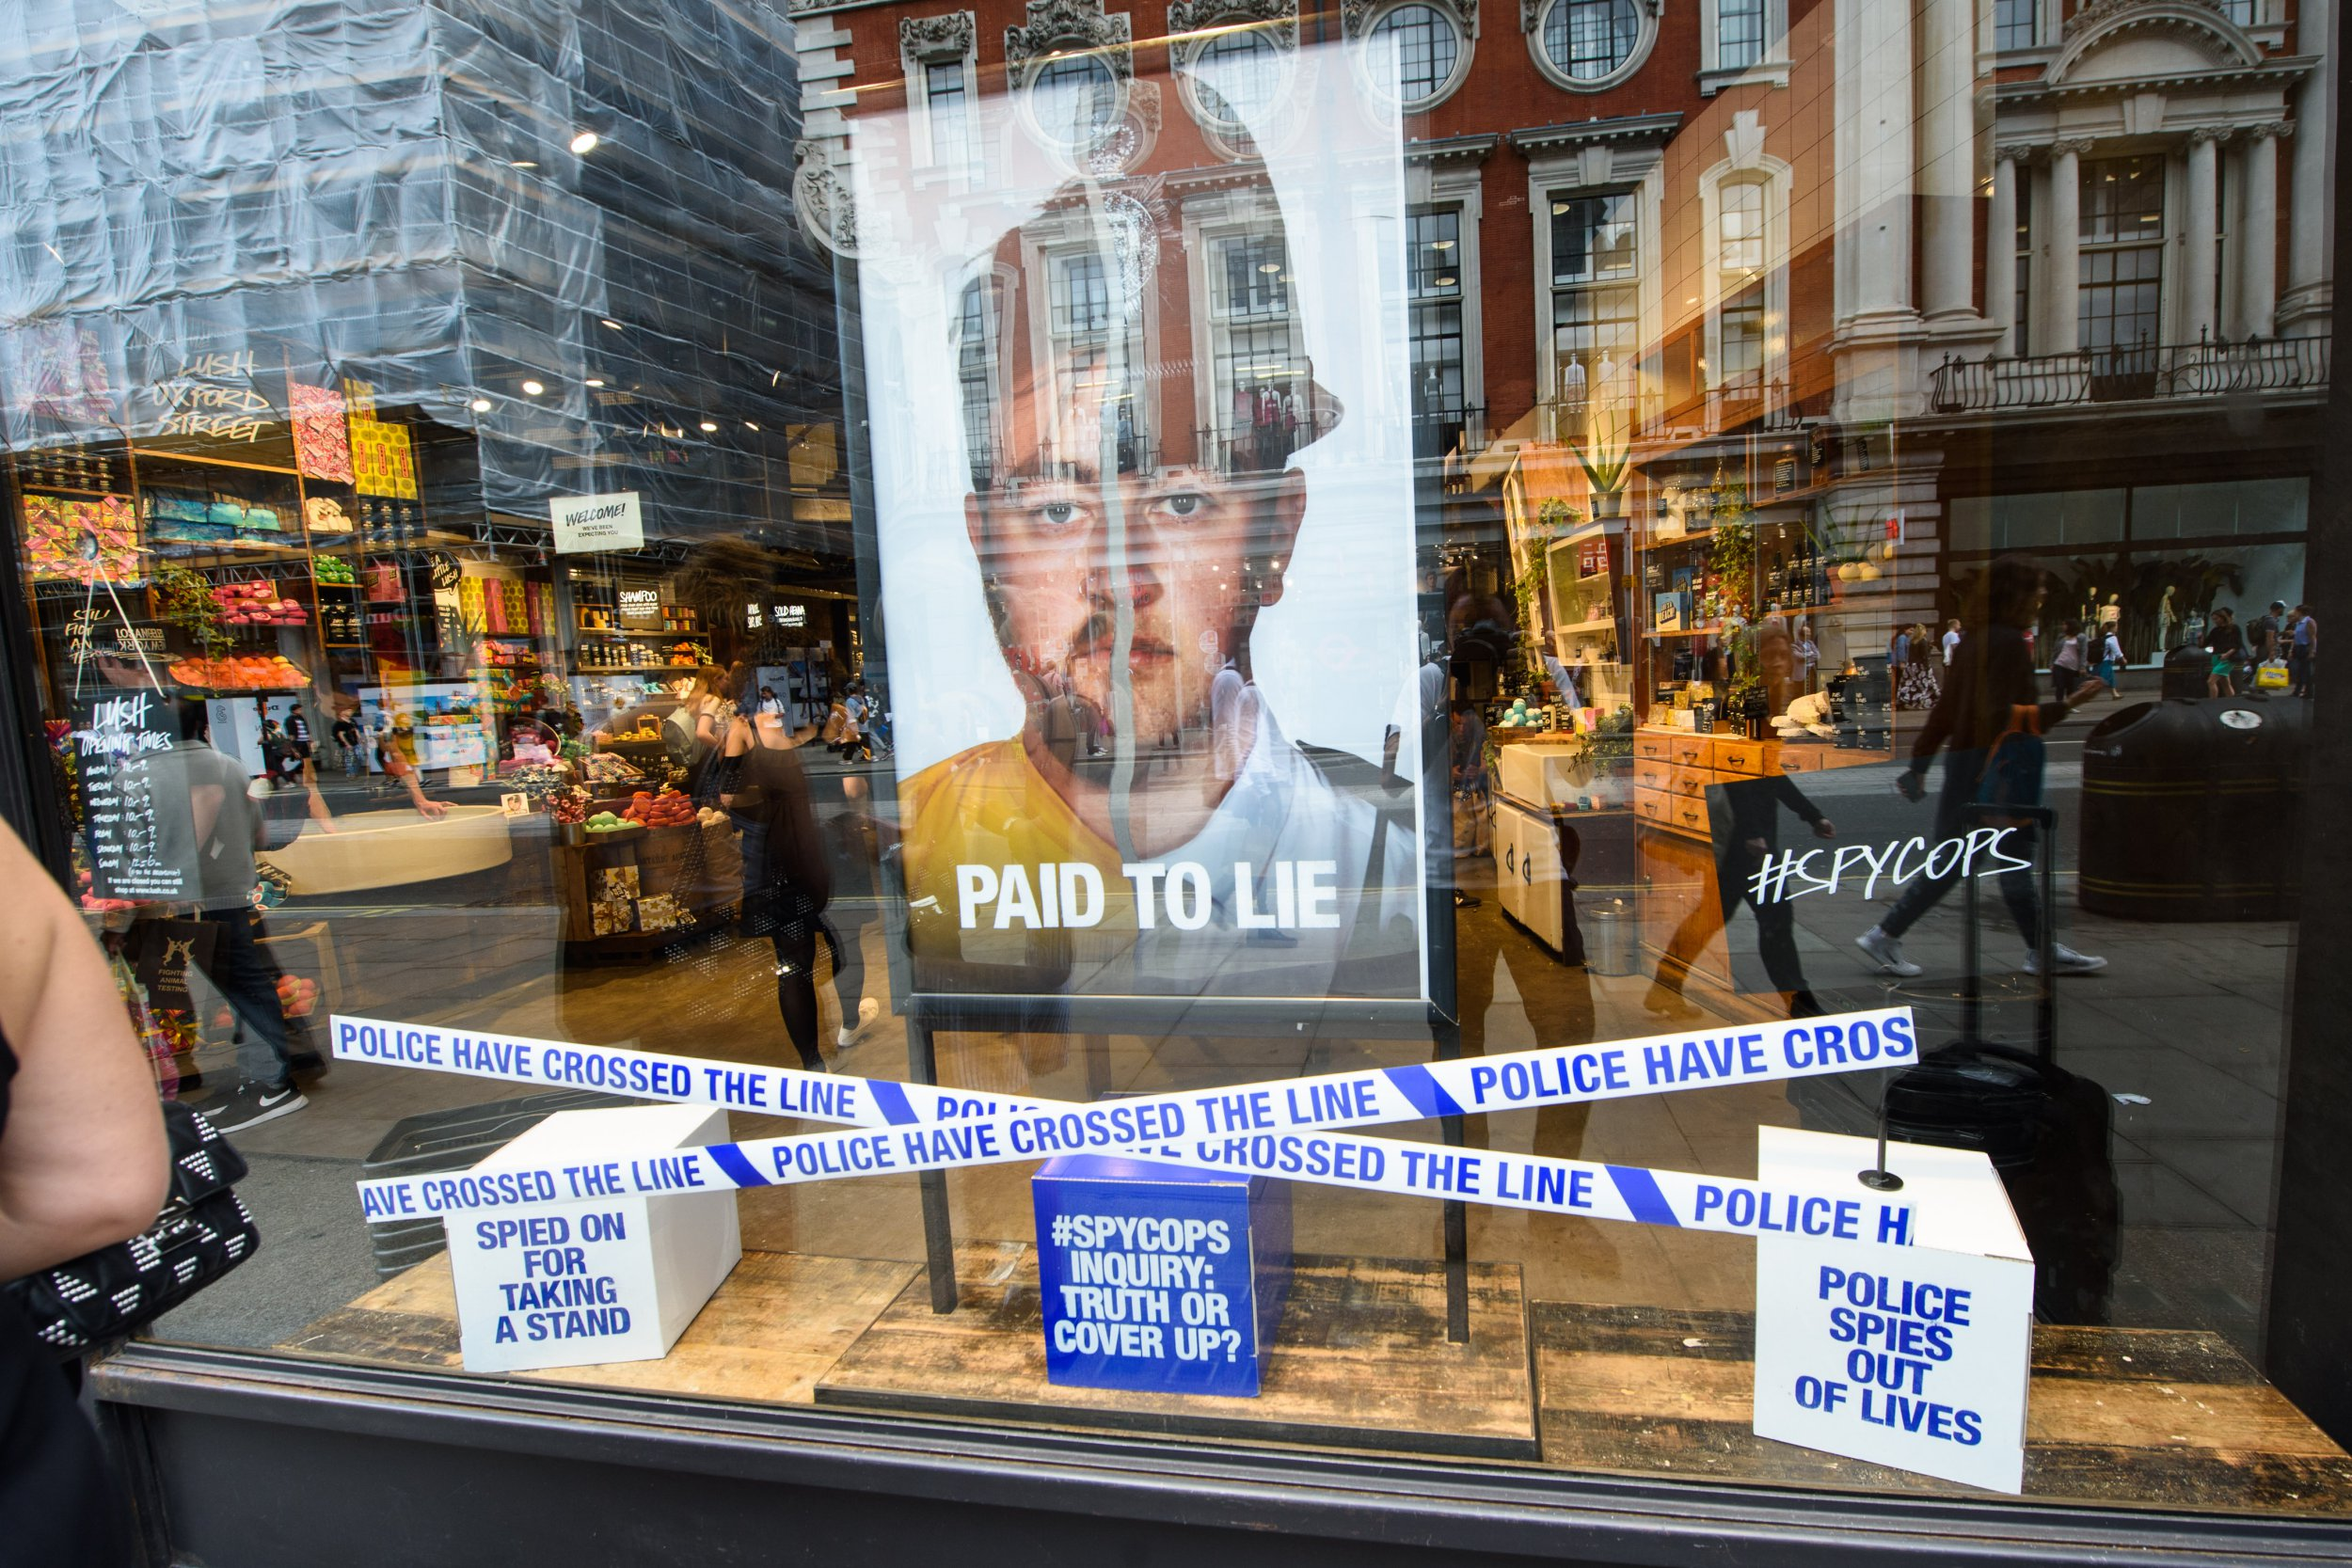 General view of Lush cosmetics shop in Oxford Street, London, featuring a controiversial window display referencing undercover police tactics. Picture date: Friday June 1st, 2018. Photo credit should read: Matt Crossick/ EMPICS Entertainment.